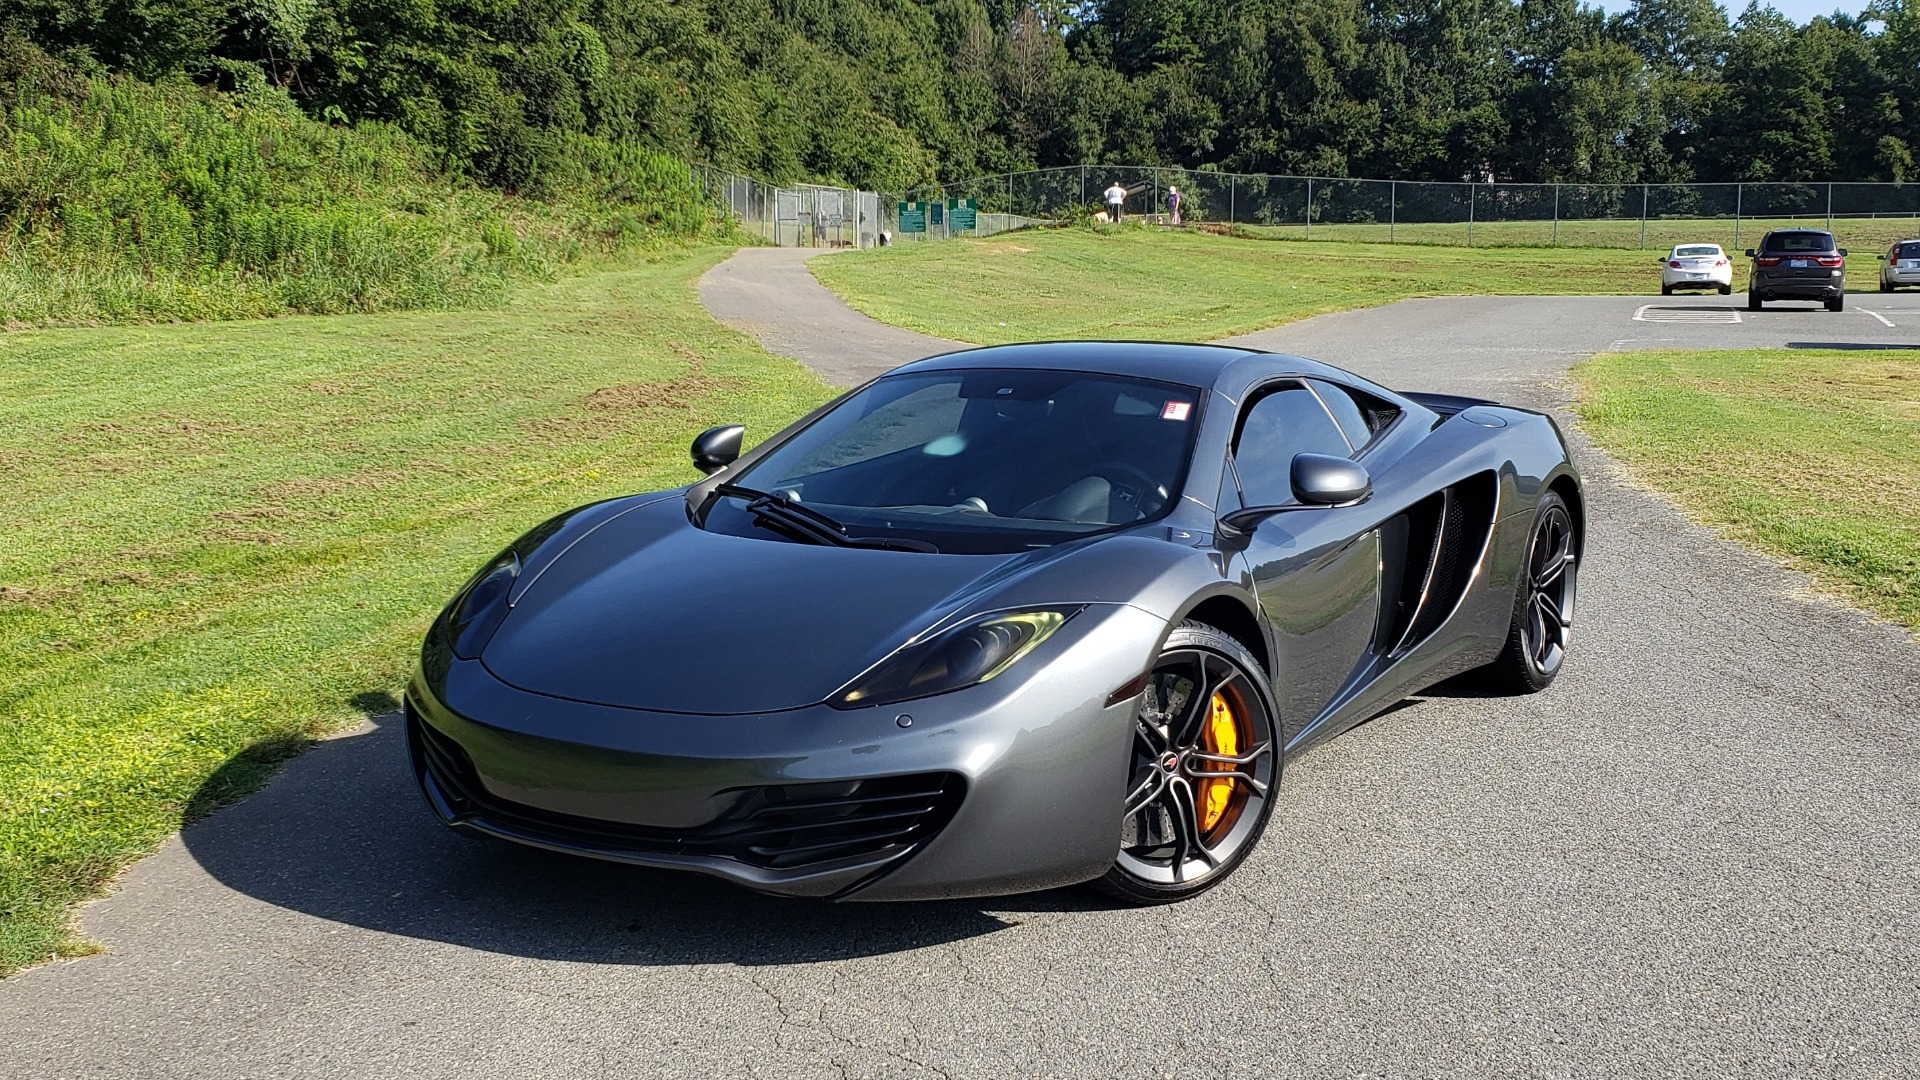 Used 2012 McLaren MP4-12C COUPE / 3.8 L V8 592HP / AUTO / NAV / CCB / LOW MILES for sale $97,999 at Formula Imports in Charlotte NC 28227 2